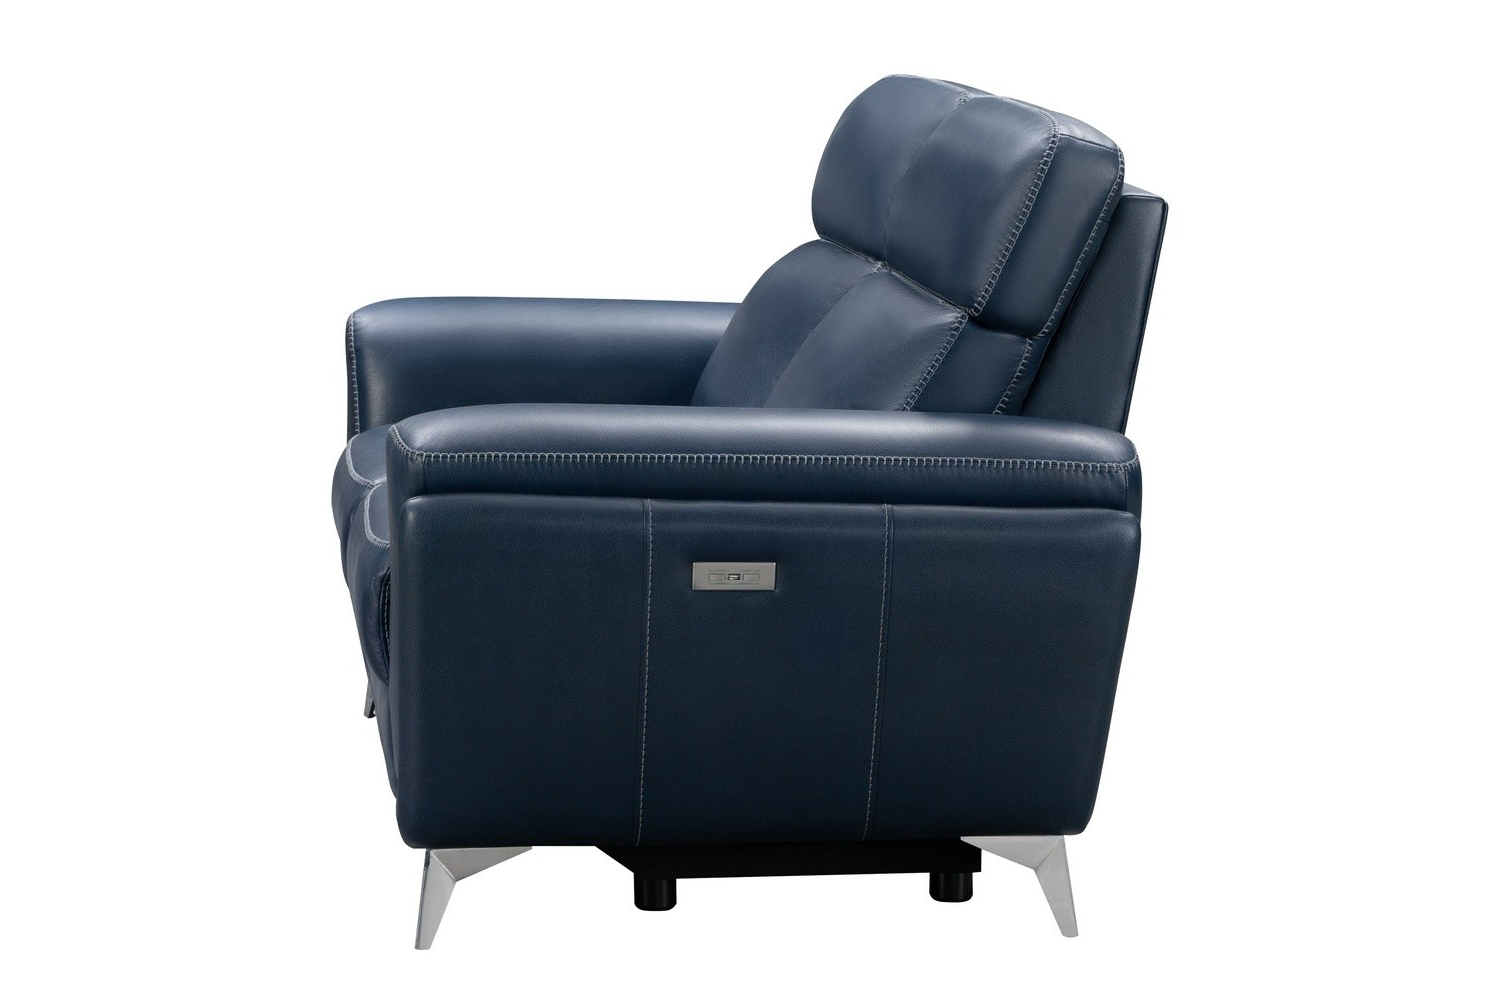 Barcalounger Cameron Power Reclining Loveseat With Power With Regard To Trendy Marco Leather Power Reclining Sofas (View 10 of 15)